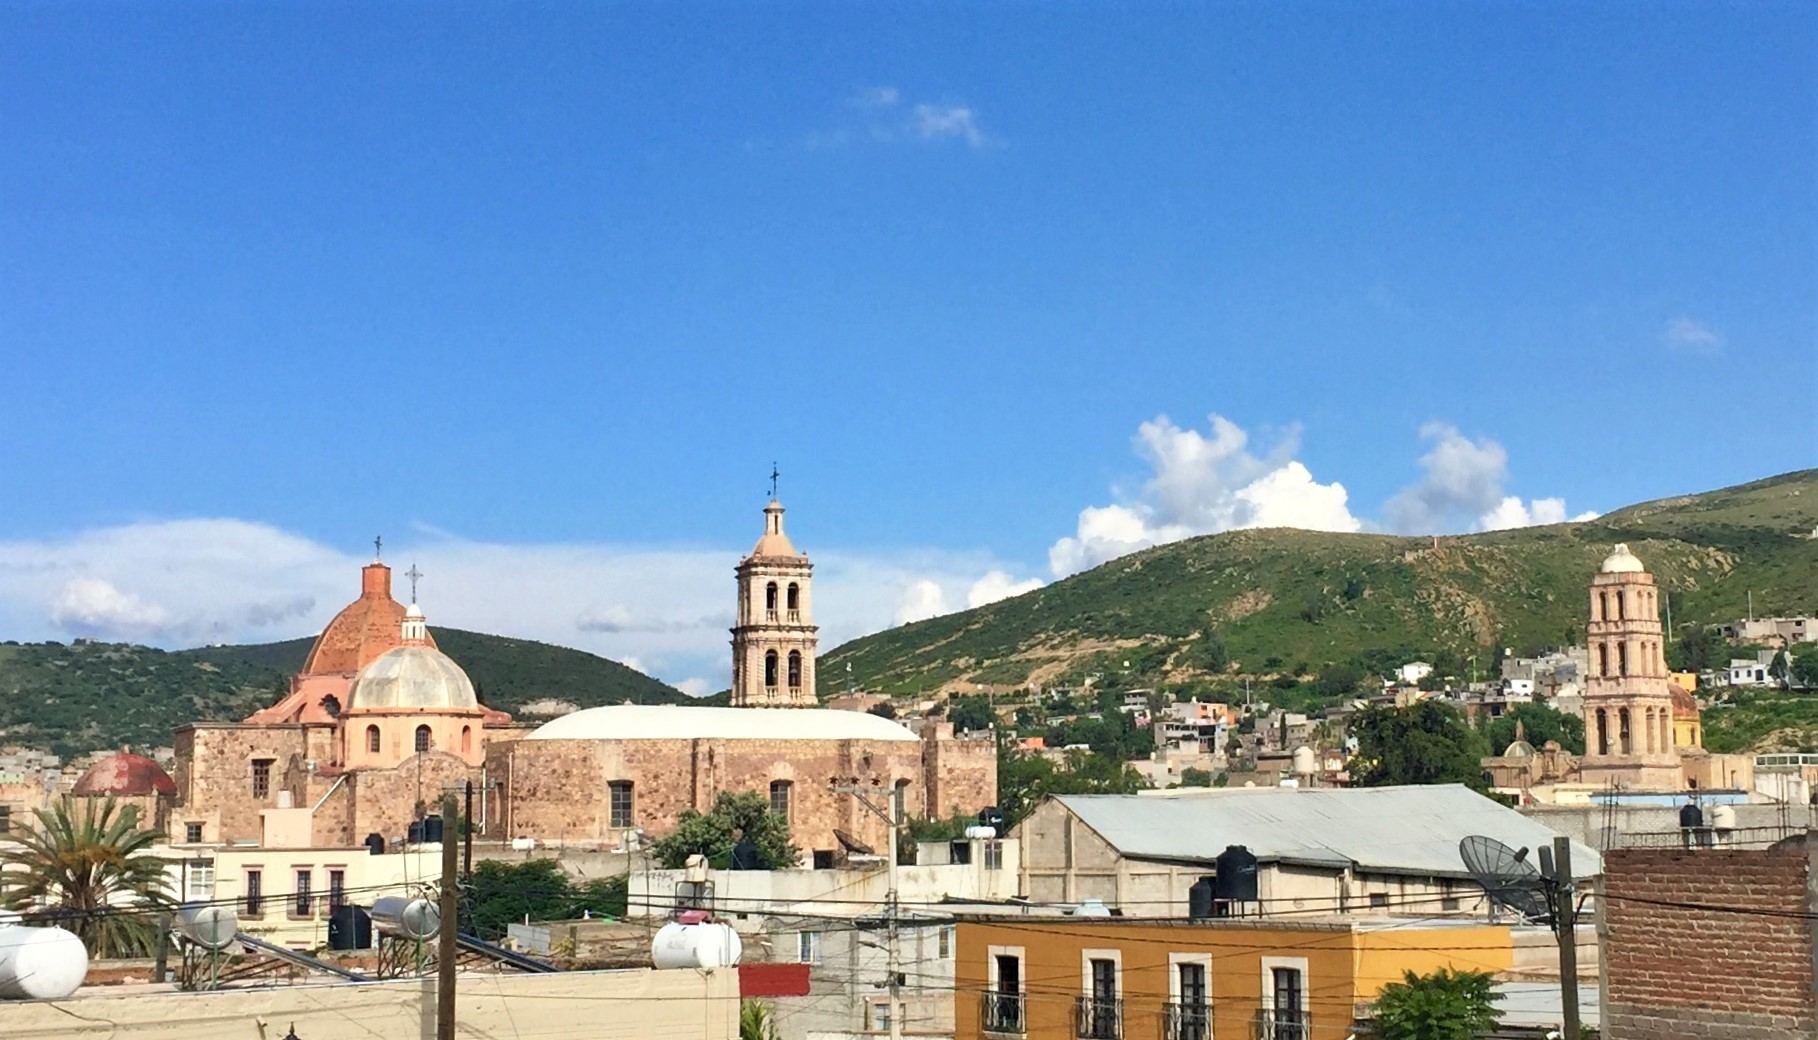 The State of Zacatecas – Part 1 (Sept 1 to 5)